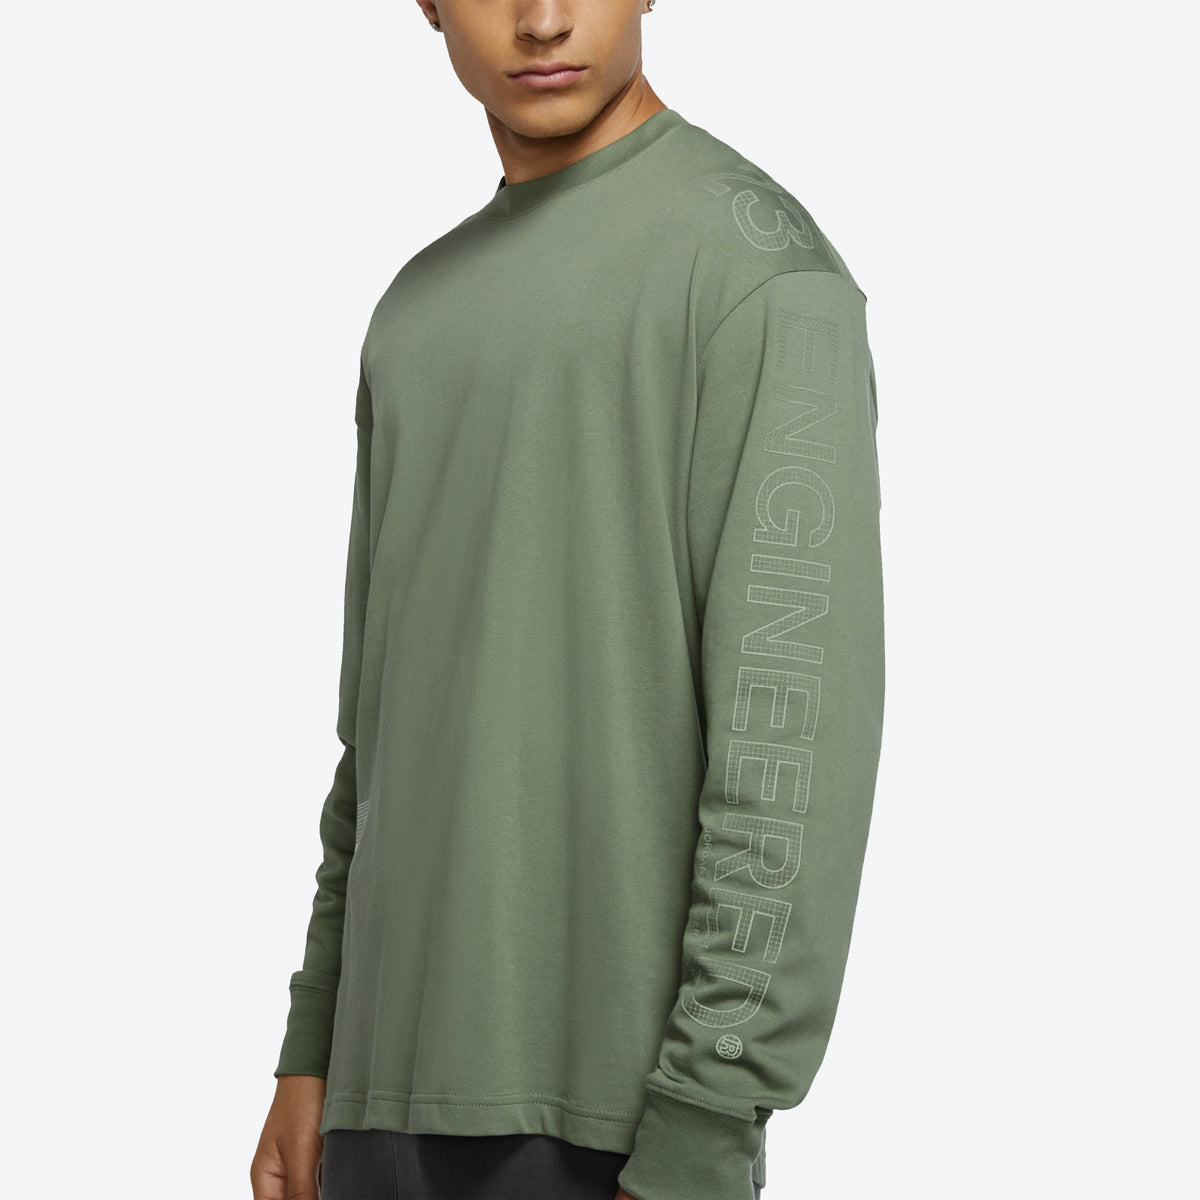 Jordan 23 Engineered Long Sleeve T-Shirt - Sage Green